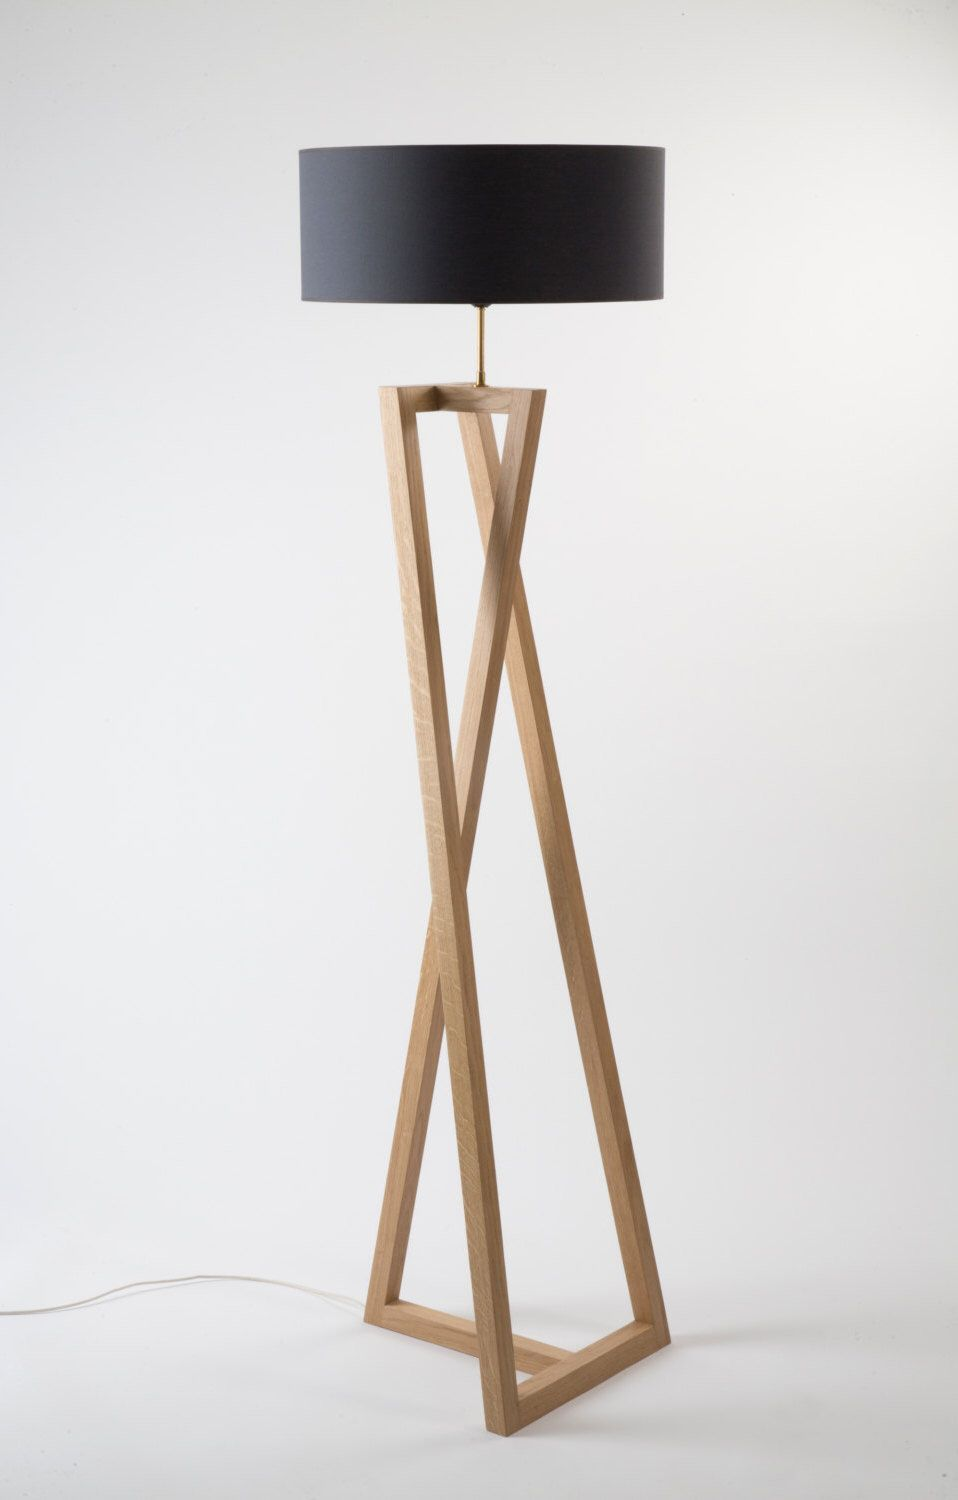 Nature lovers these are the modern floor lamps for you weve found the perfect modern floor lamps to fit into the best natural setting lights in weve found the perfect modern floor lamps to get your home aloadofball Choice Image